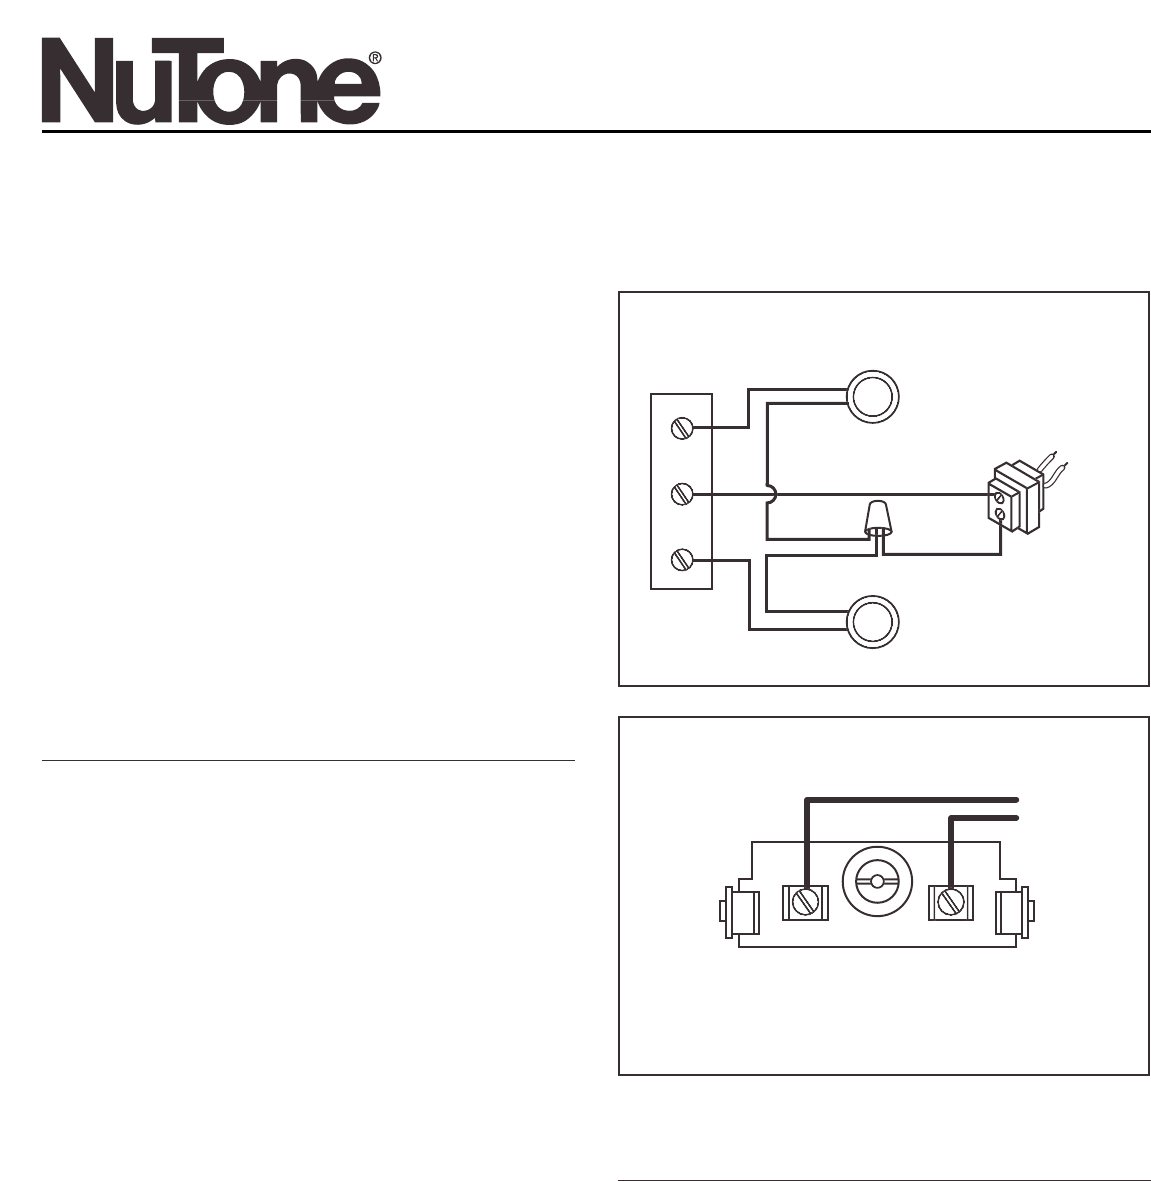 3913fb41 9112 40b1 be06 63c95f4b3cac bg1 nutone door lb 76 user guide manualsonline com nutone scovill intercom wiring diagram at n-0.co